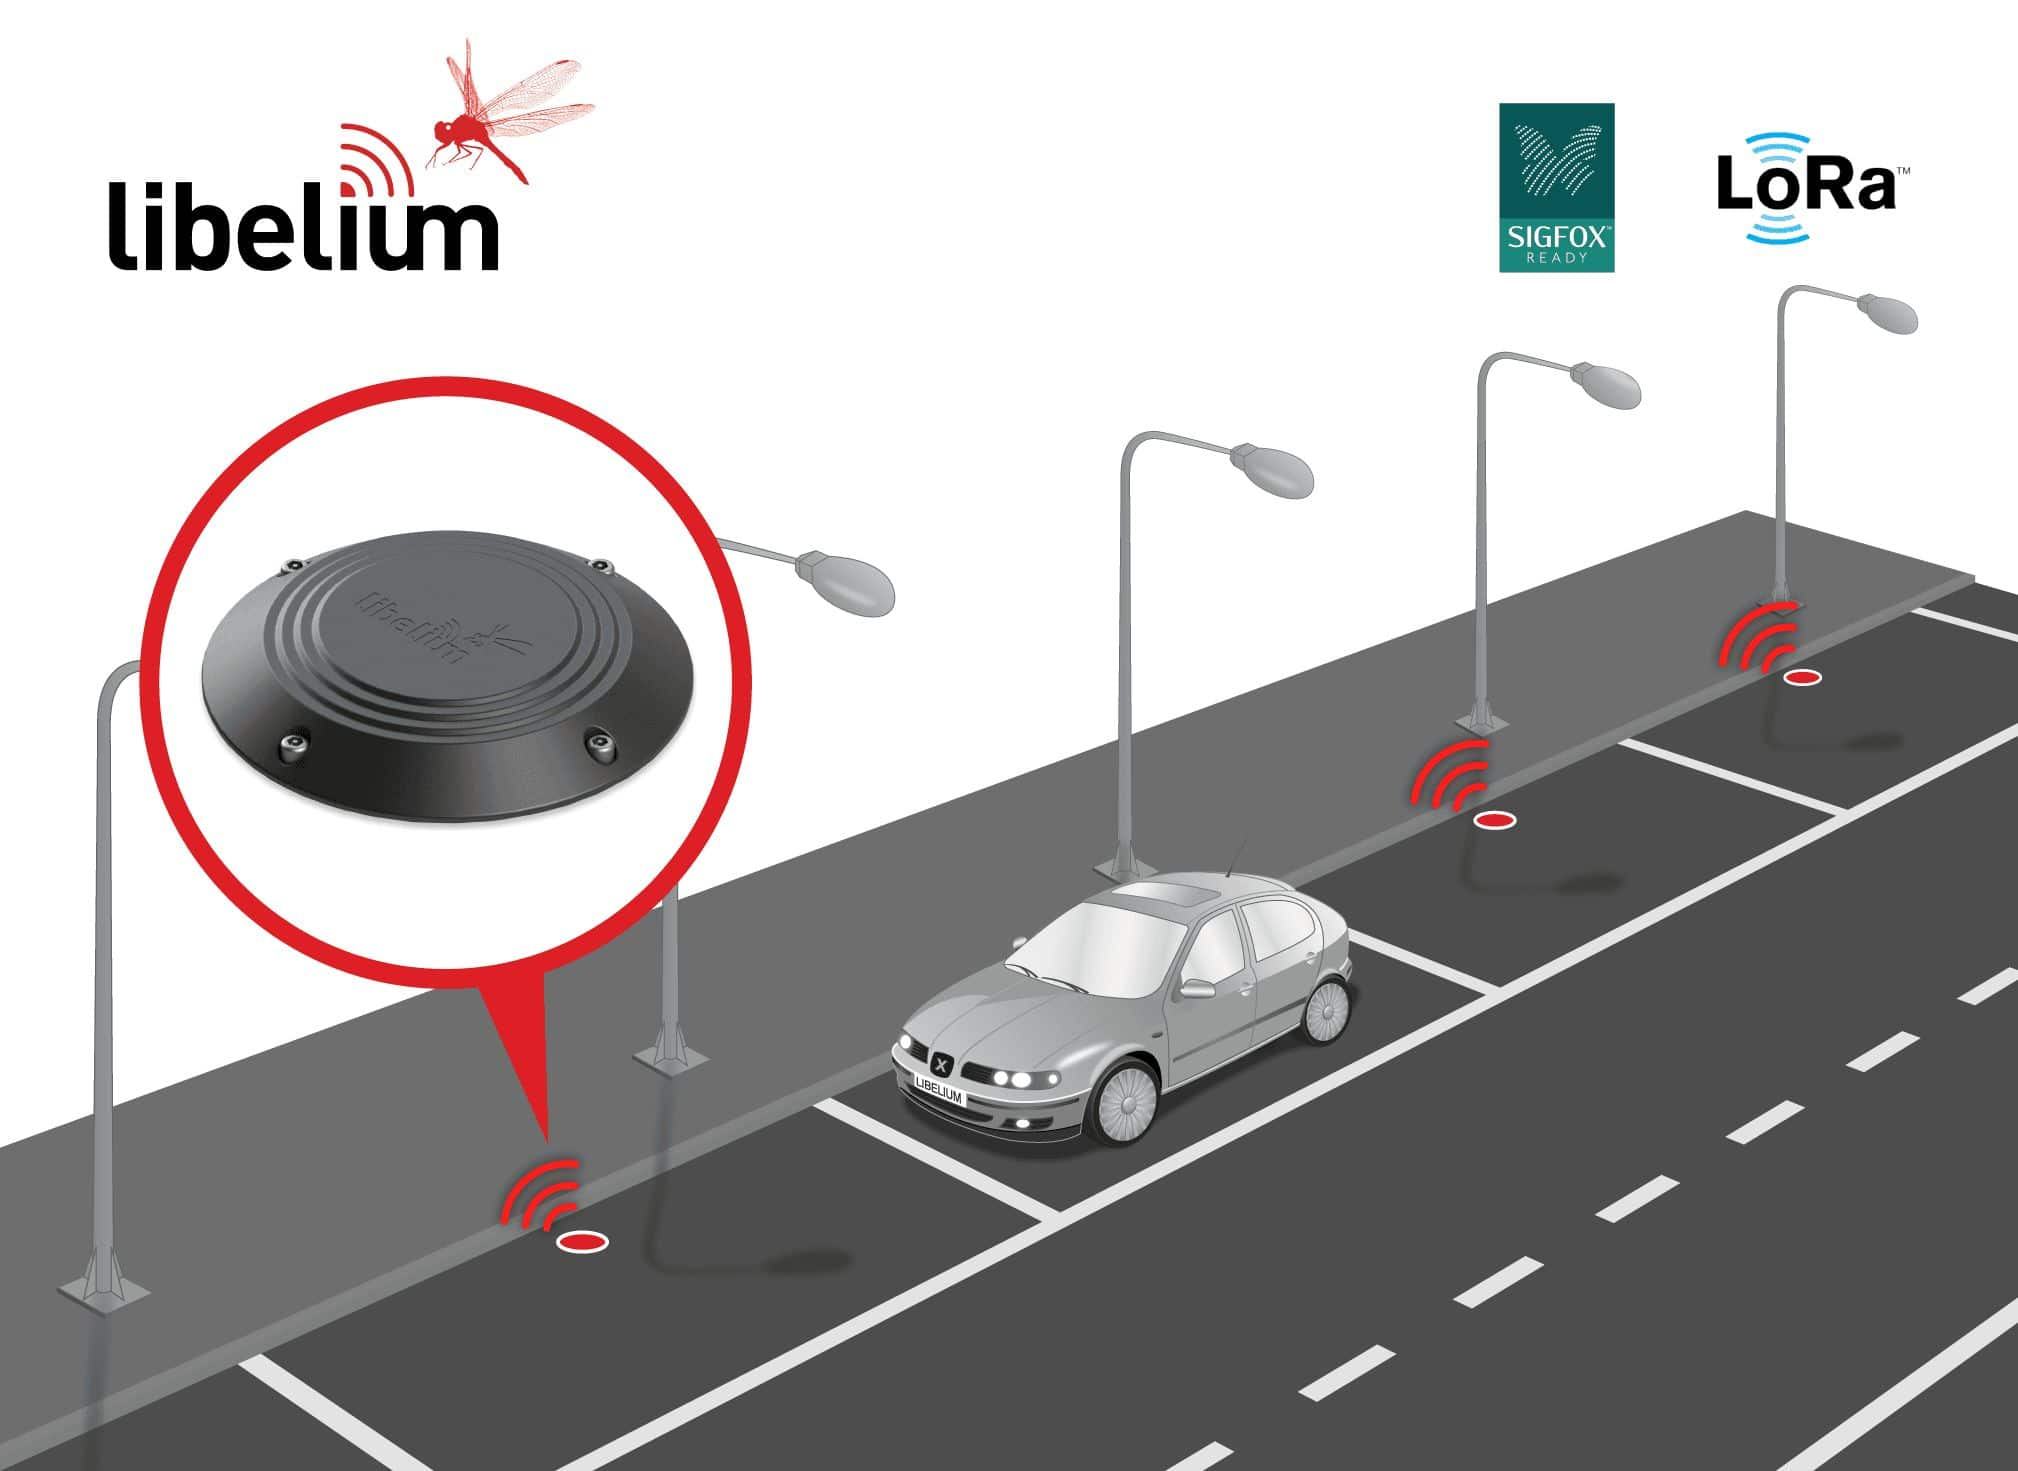 Libelium-Metiora Smart Parking Sigfox Kit